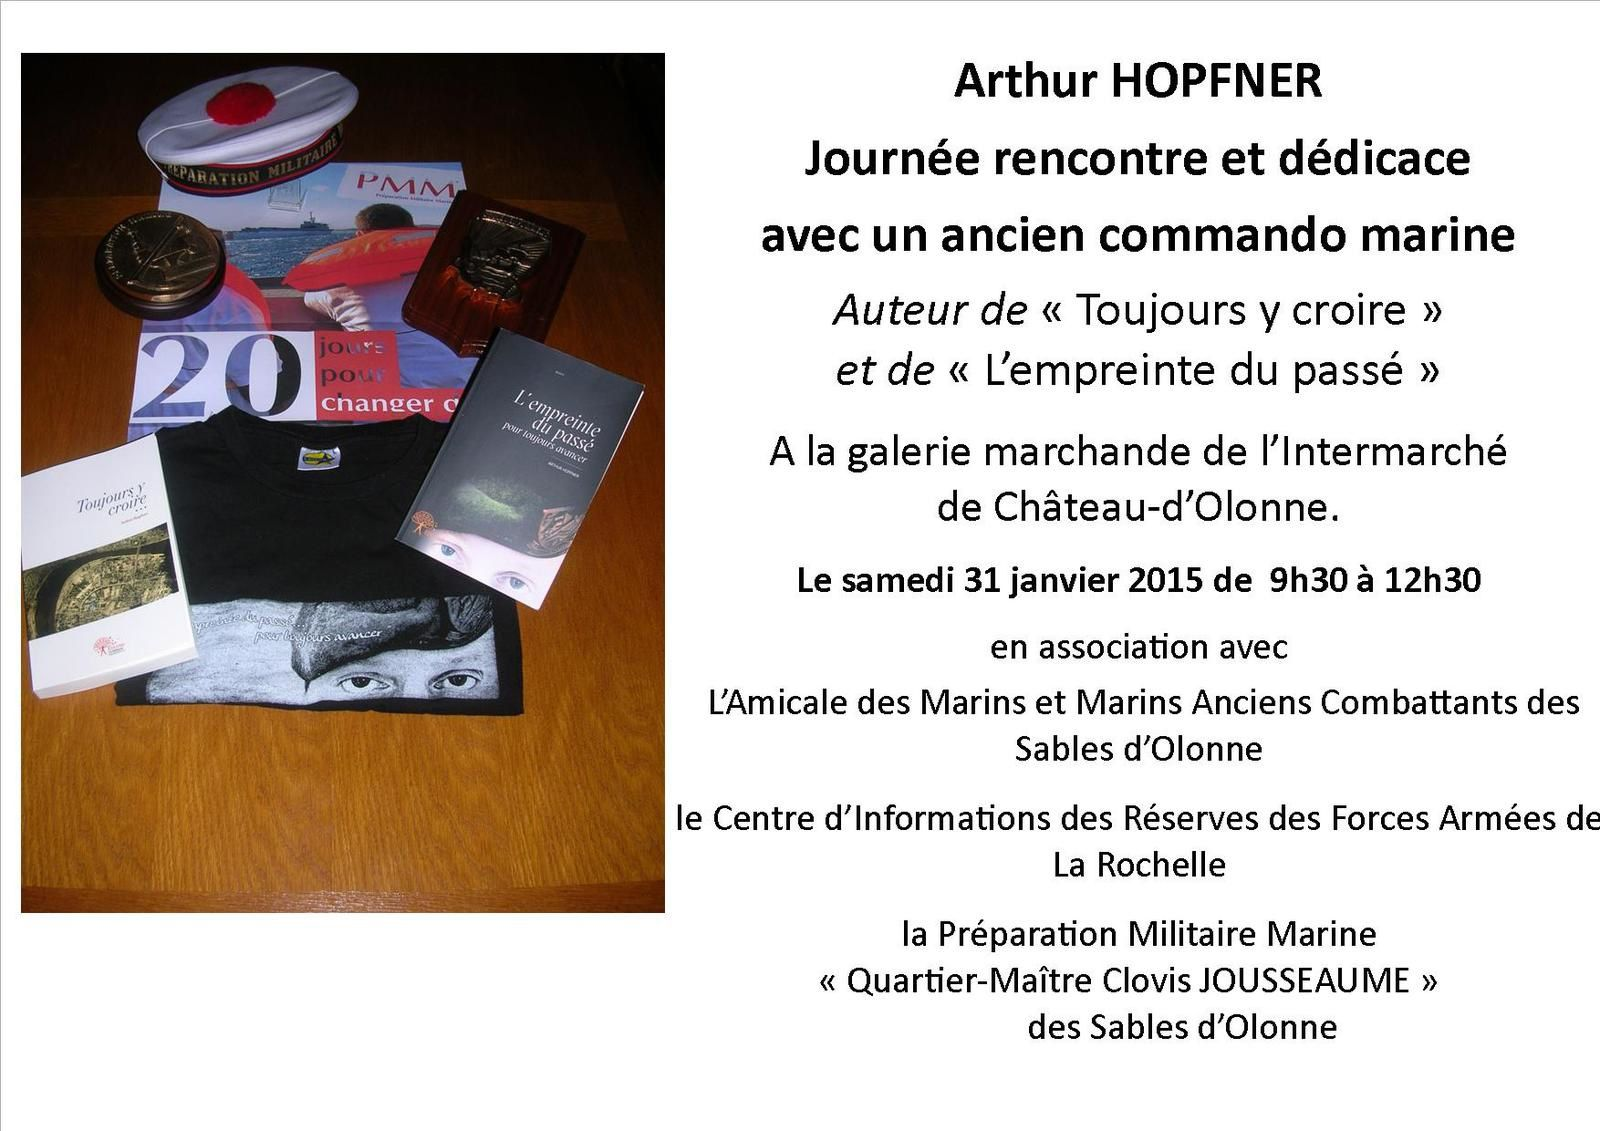 Arthur HOPFNER Journée rencontre et dédicace avec un ancien commando marine